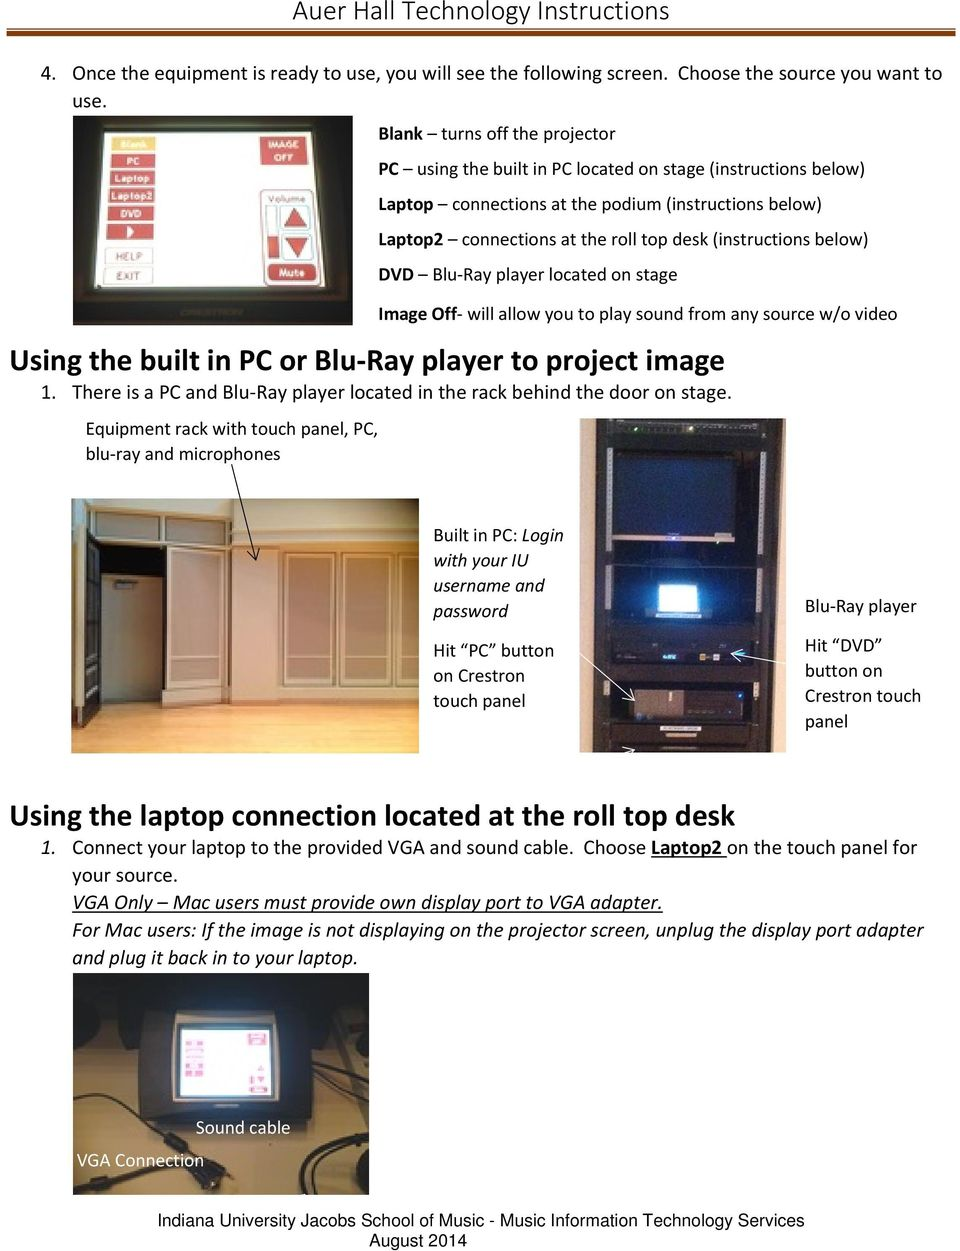 Equipment rack with touch panel, PC, blu-ray and microphones PC using the built in PC located on stage (instructions below) Laptop connections at the podium (instructions below) Laptop2 connections